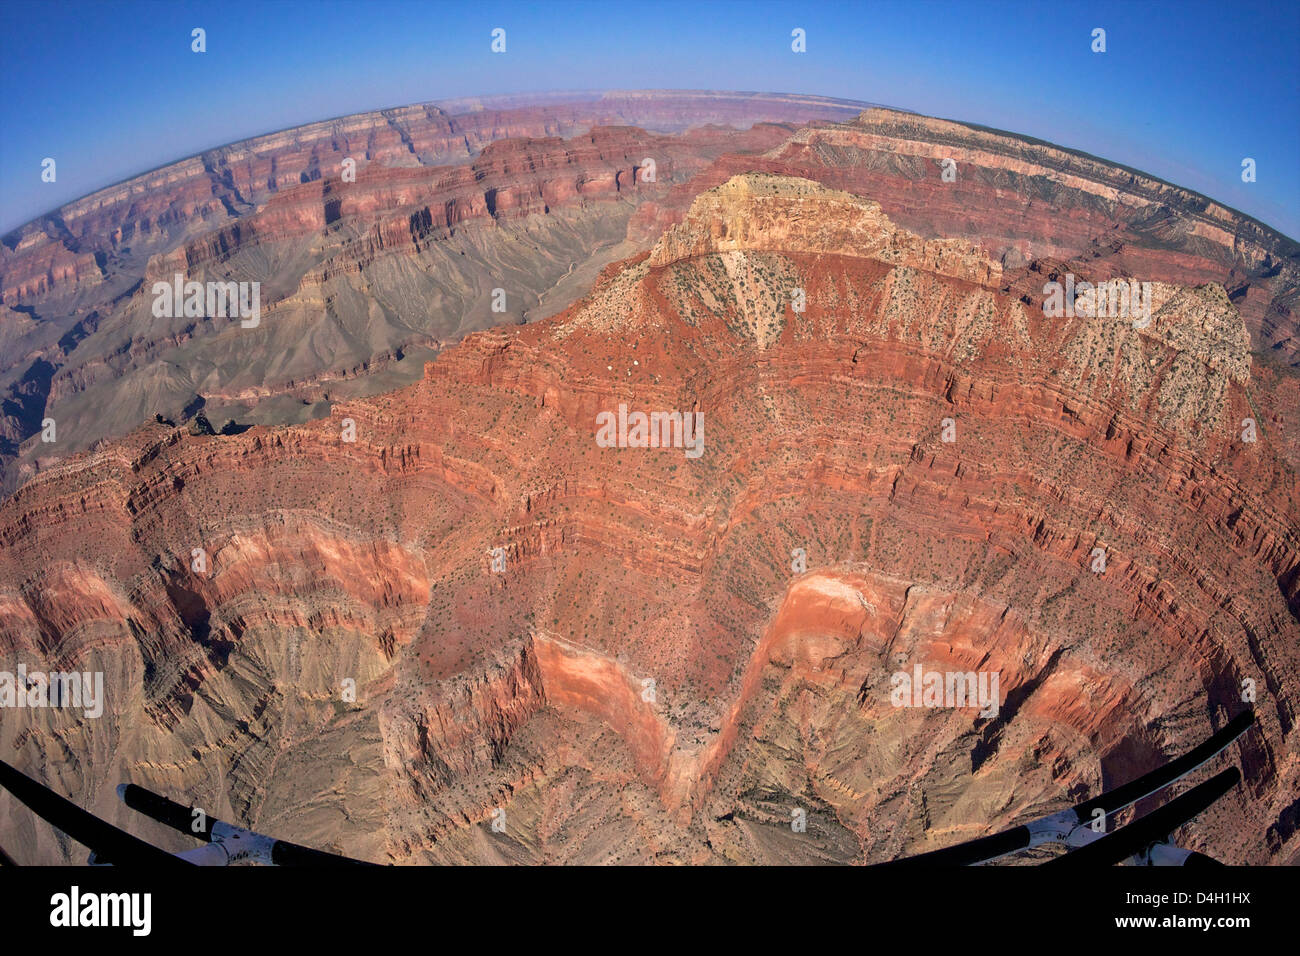 Aerial photo of Grand Canyon from Papillon Helicopter, Grand Canyon National Park, UNESCO World Heritage Site, Arizona, - Stock Image